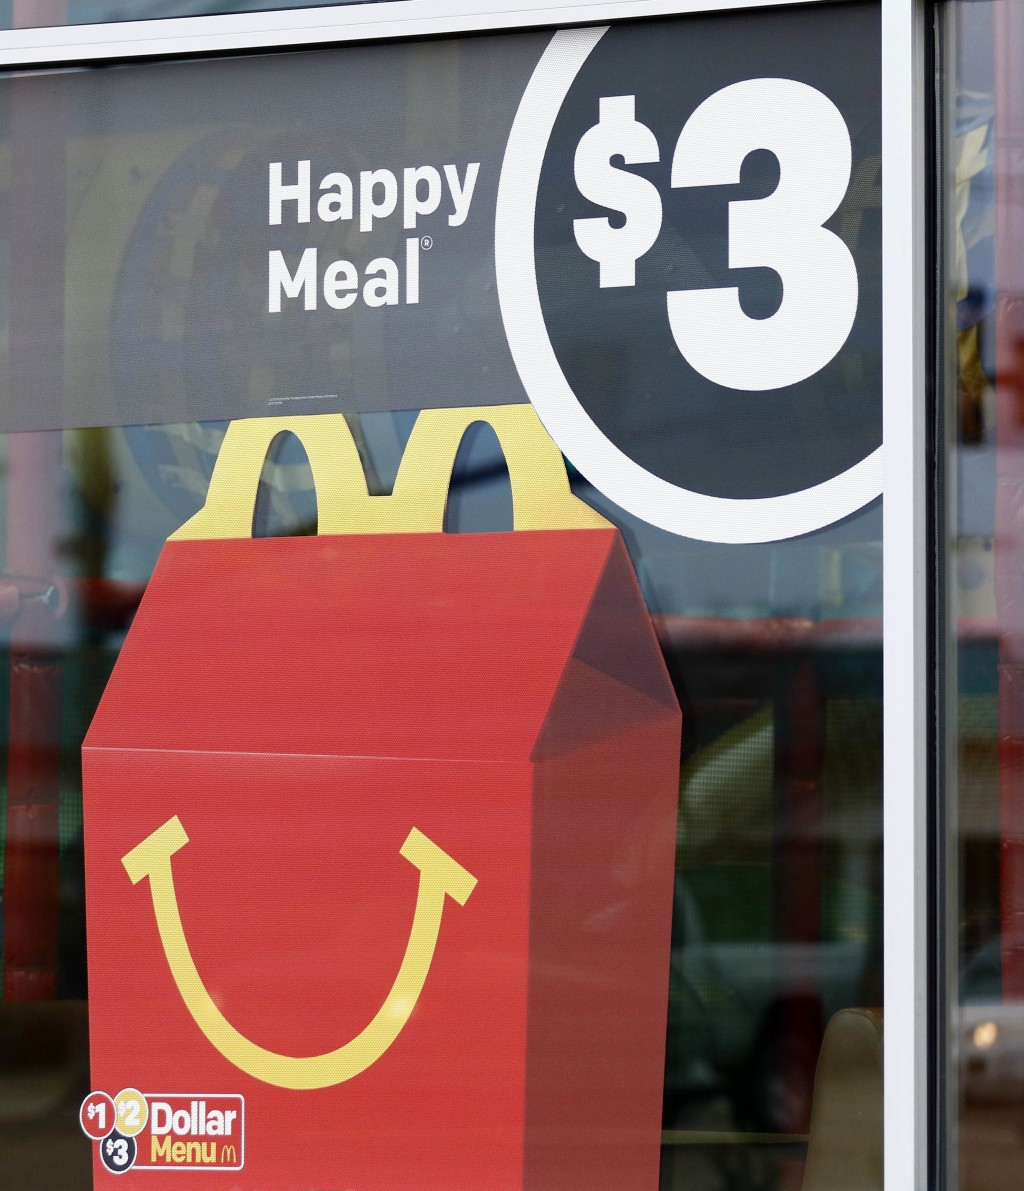 A $3 Happy Meal is advertised at a McDonald's restaurant in Brandon, Miss., Wednesday, Feb. 14, 2018. McDonald's will soon banish cheeseburgers and ch